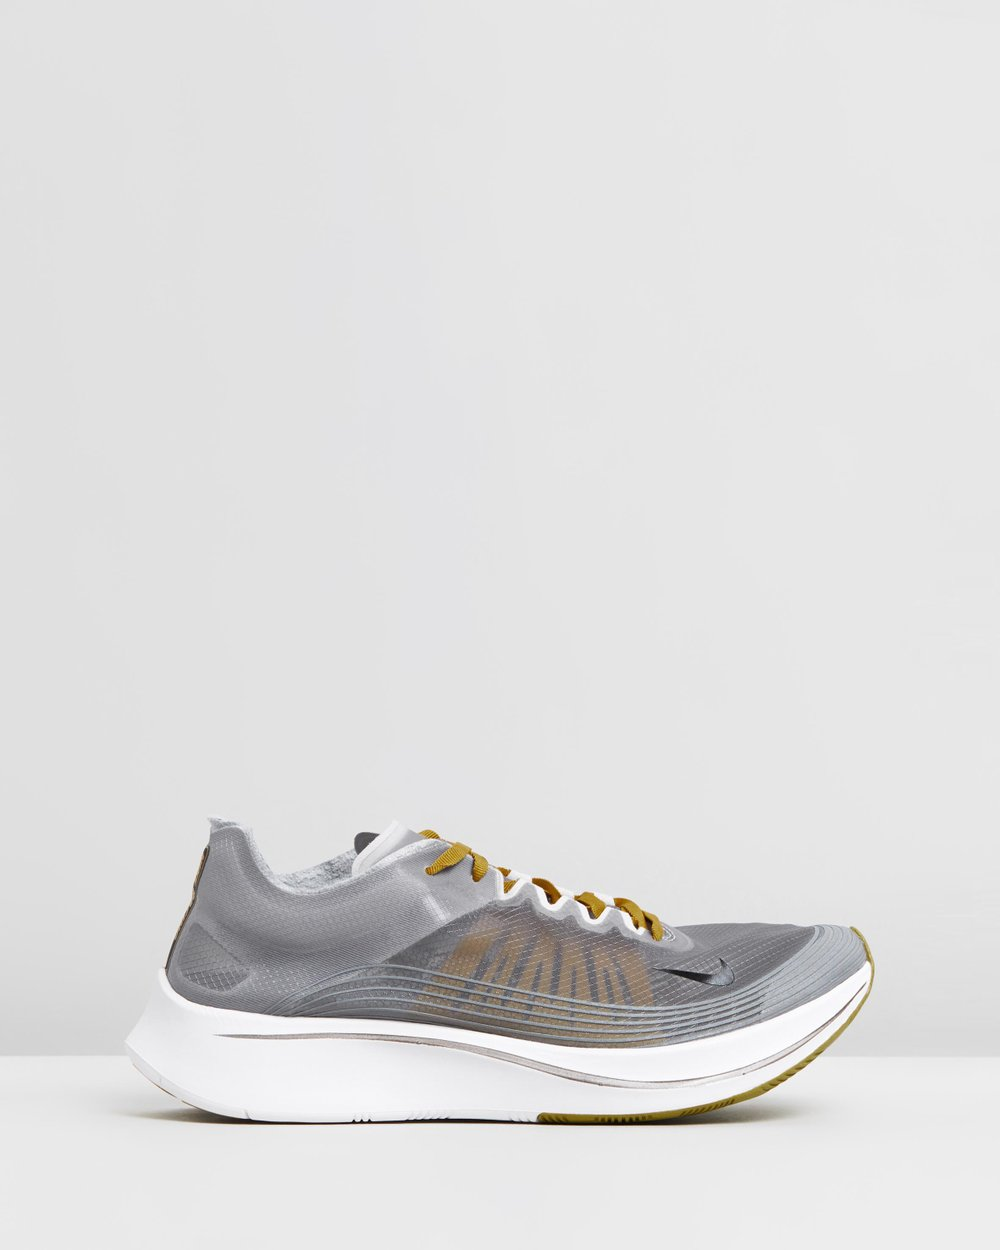 950decf2147 Zoom Fly SP - Men s by Nike Online